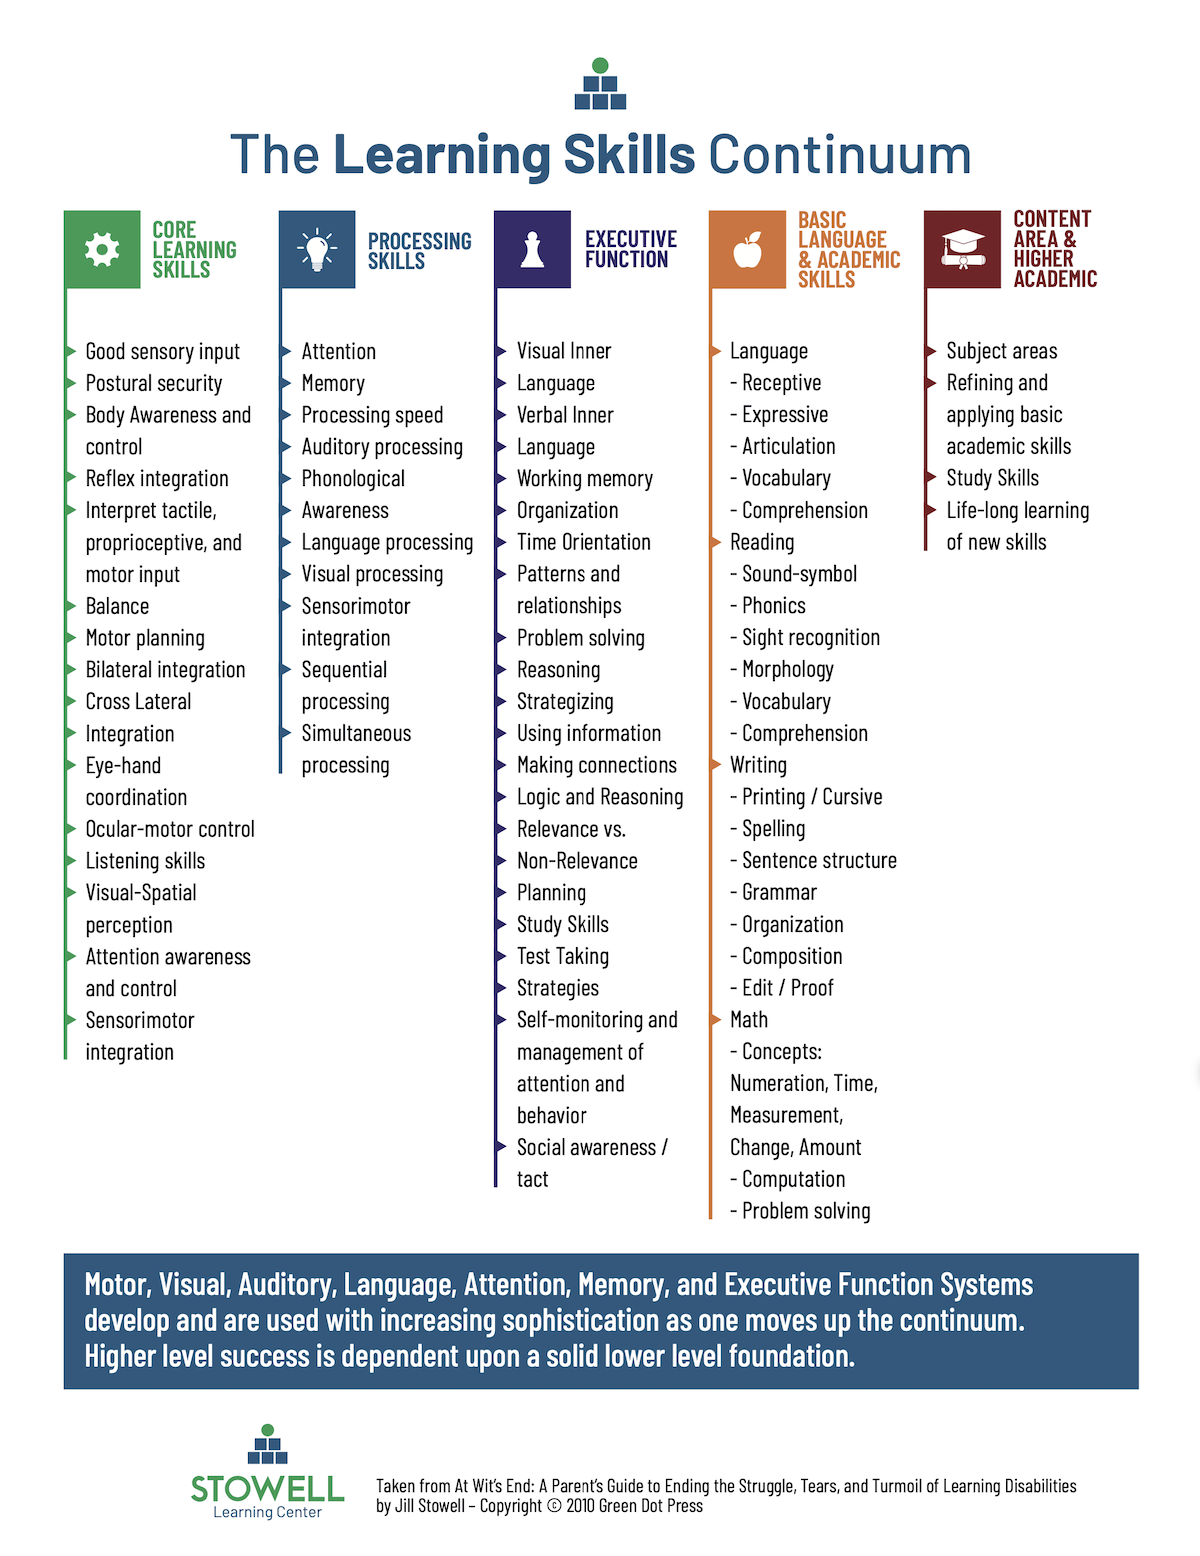 The Stowell Center - Learning Continuum Lists